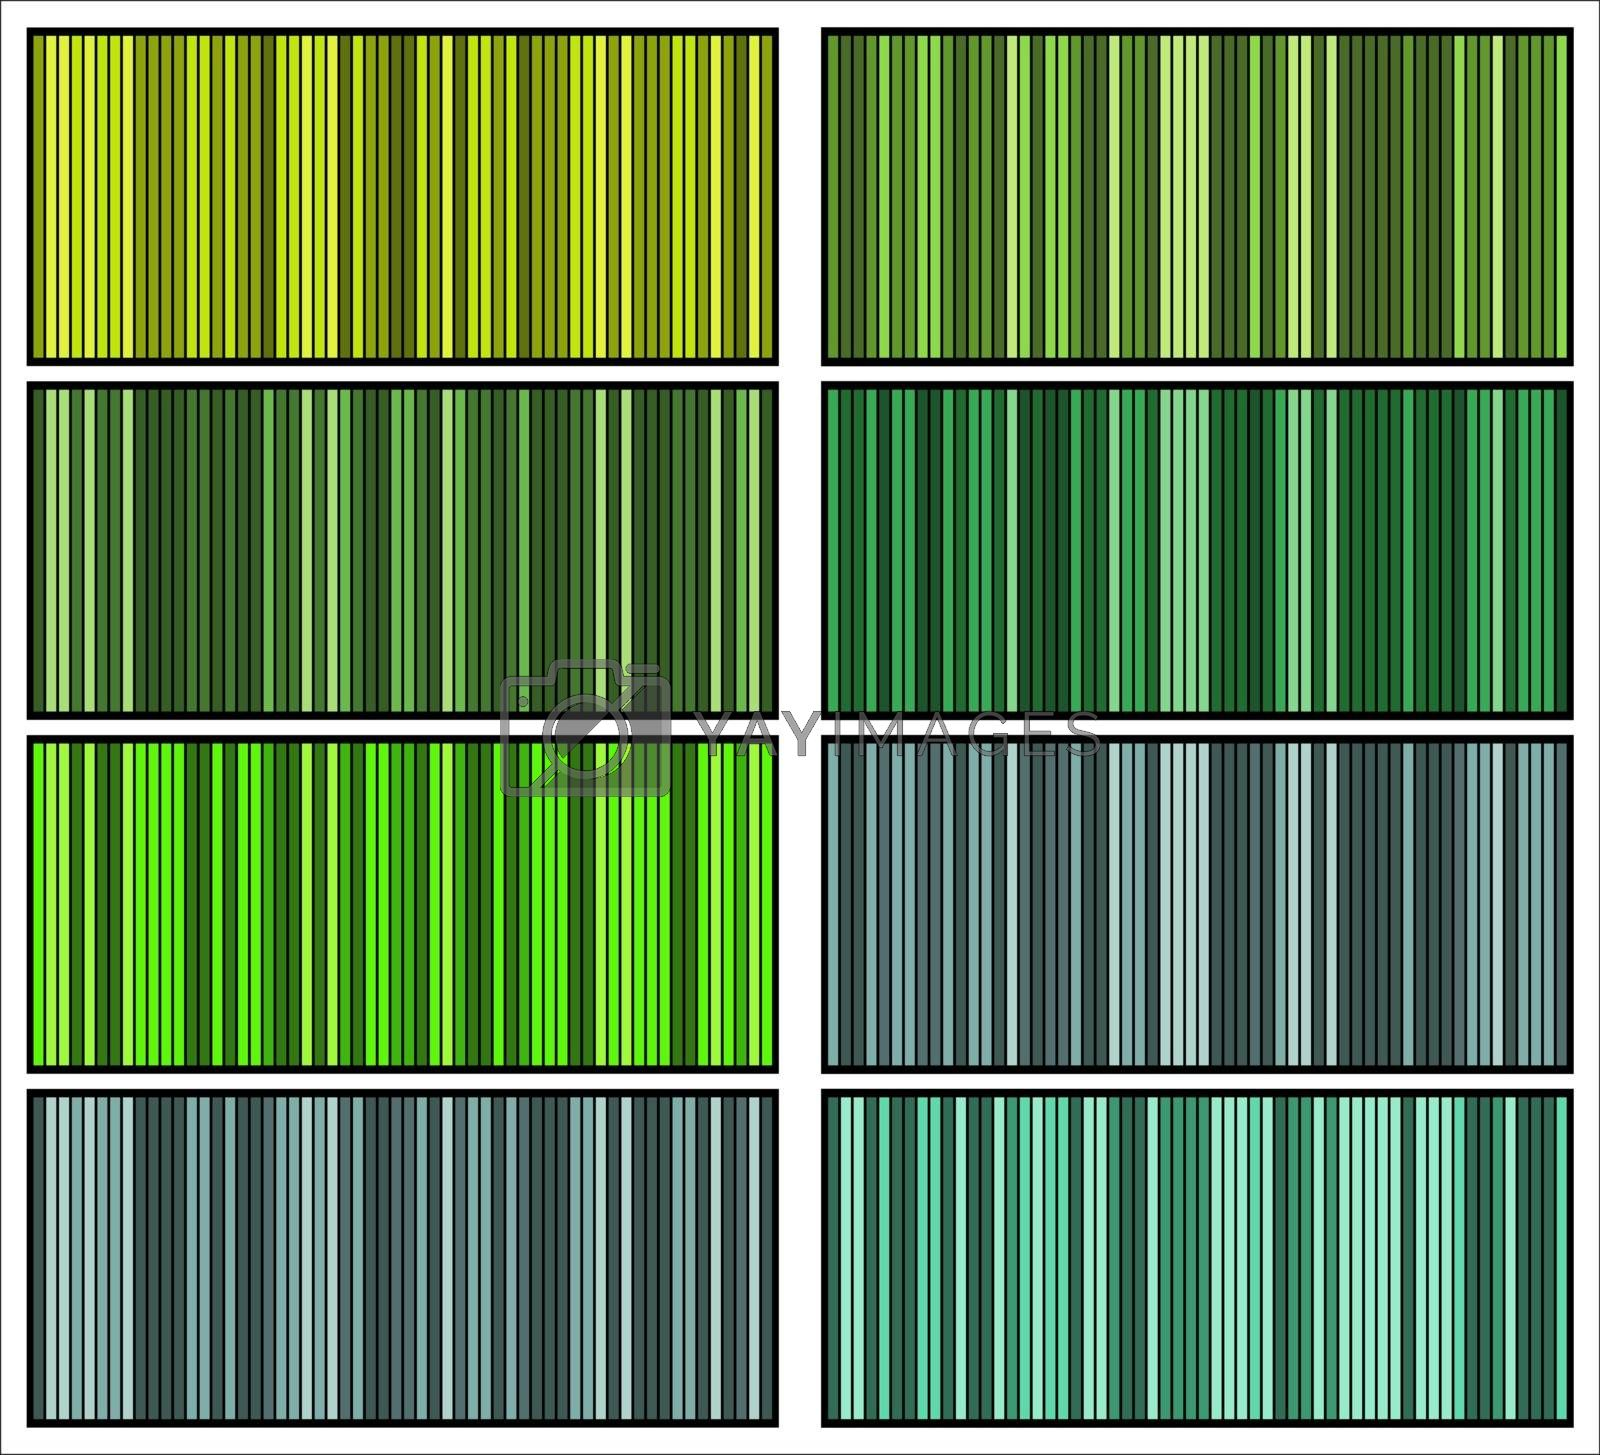 Stripes patterns collection. Green striped textured backgrounds. Template for prints, wrapping paper, fabrics, covers, flyers, banners, posters or placard. Modern vertical geometric grid.